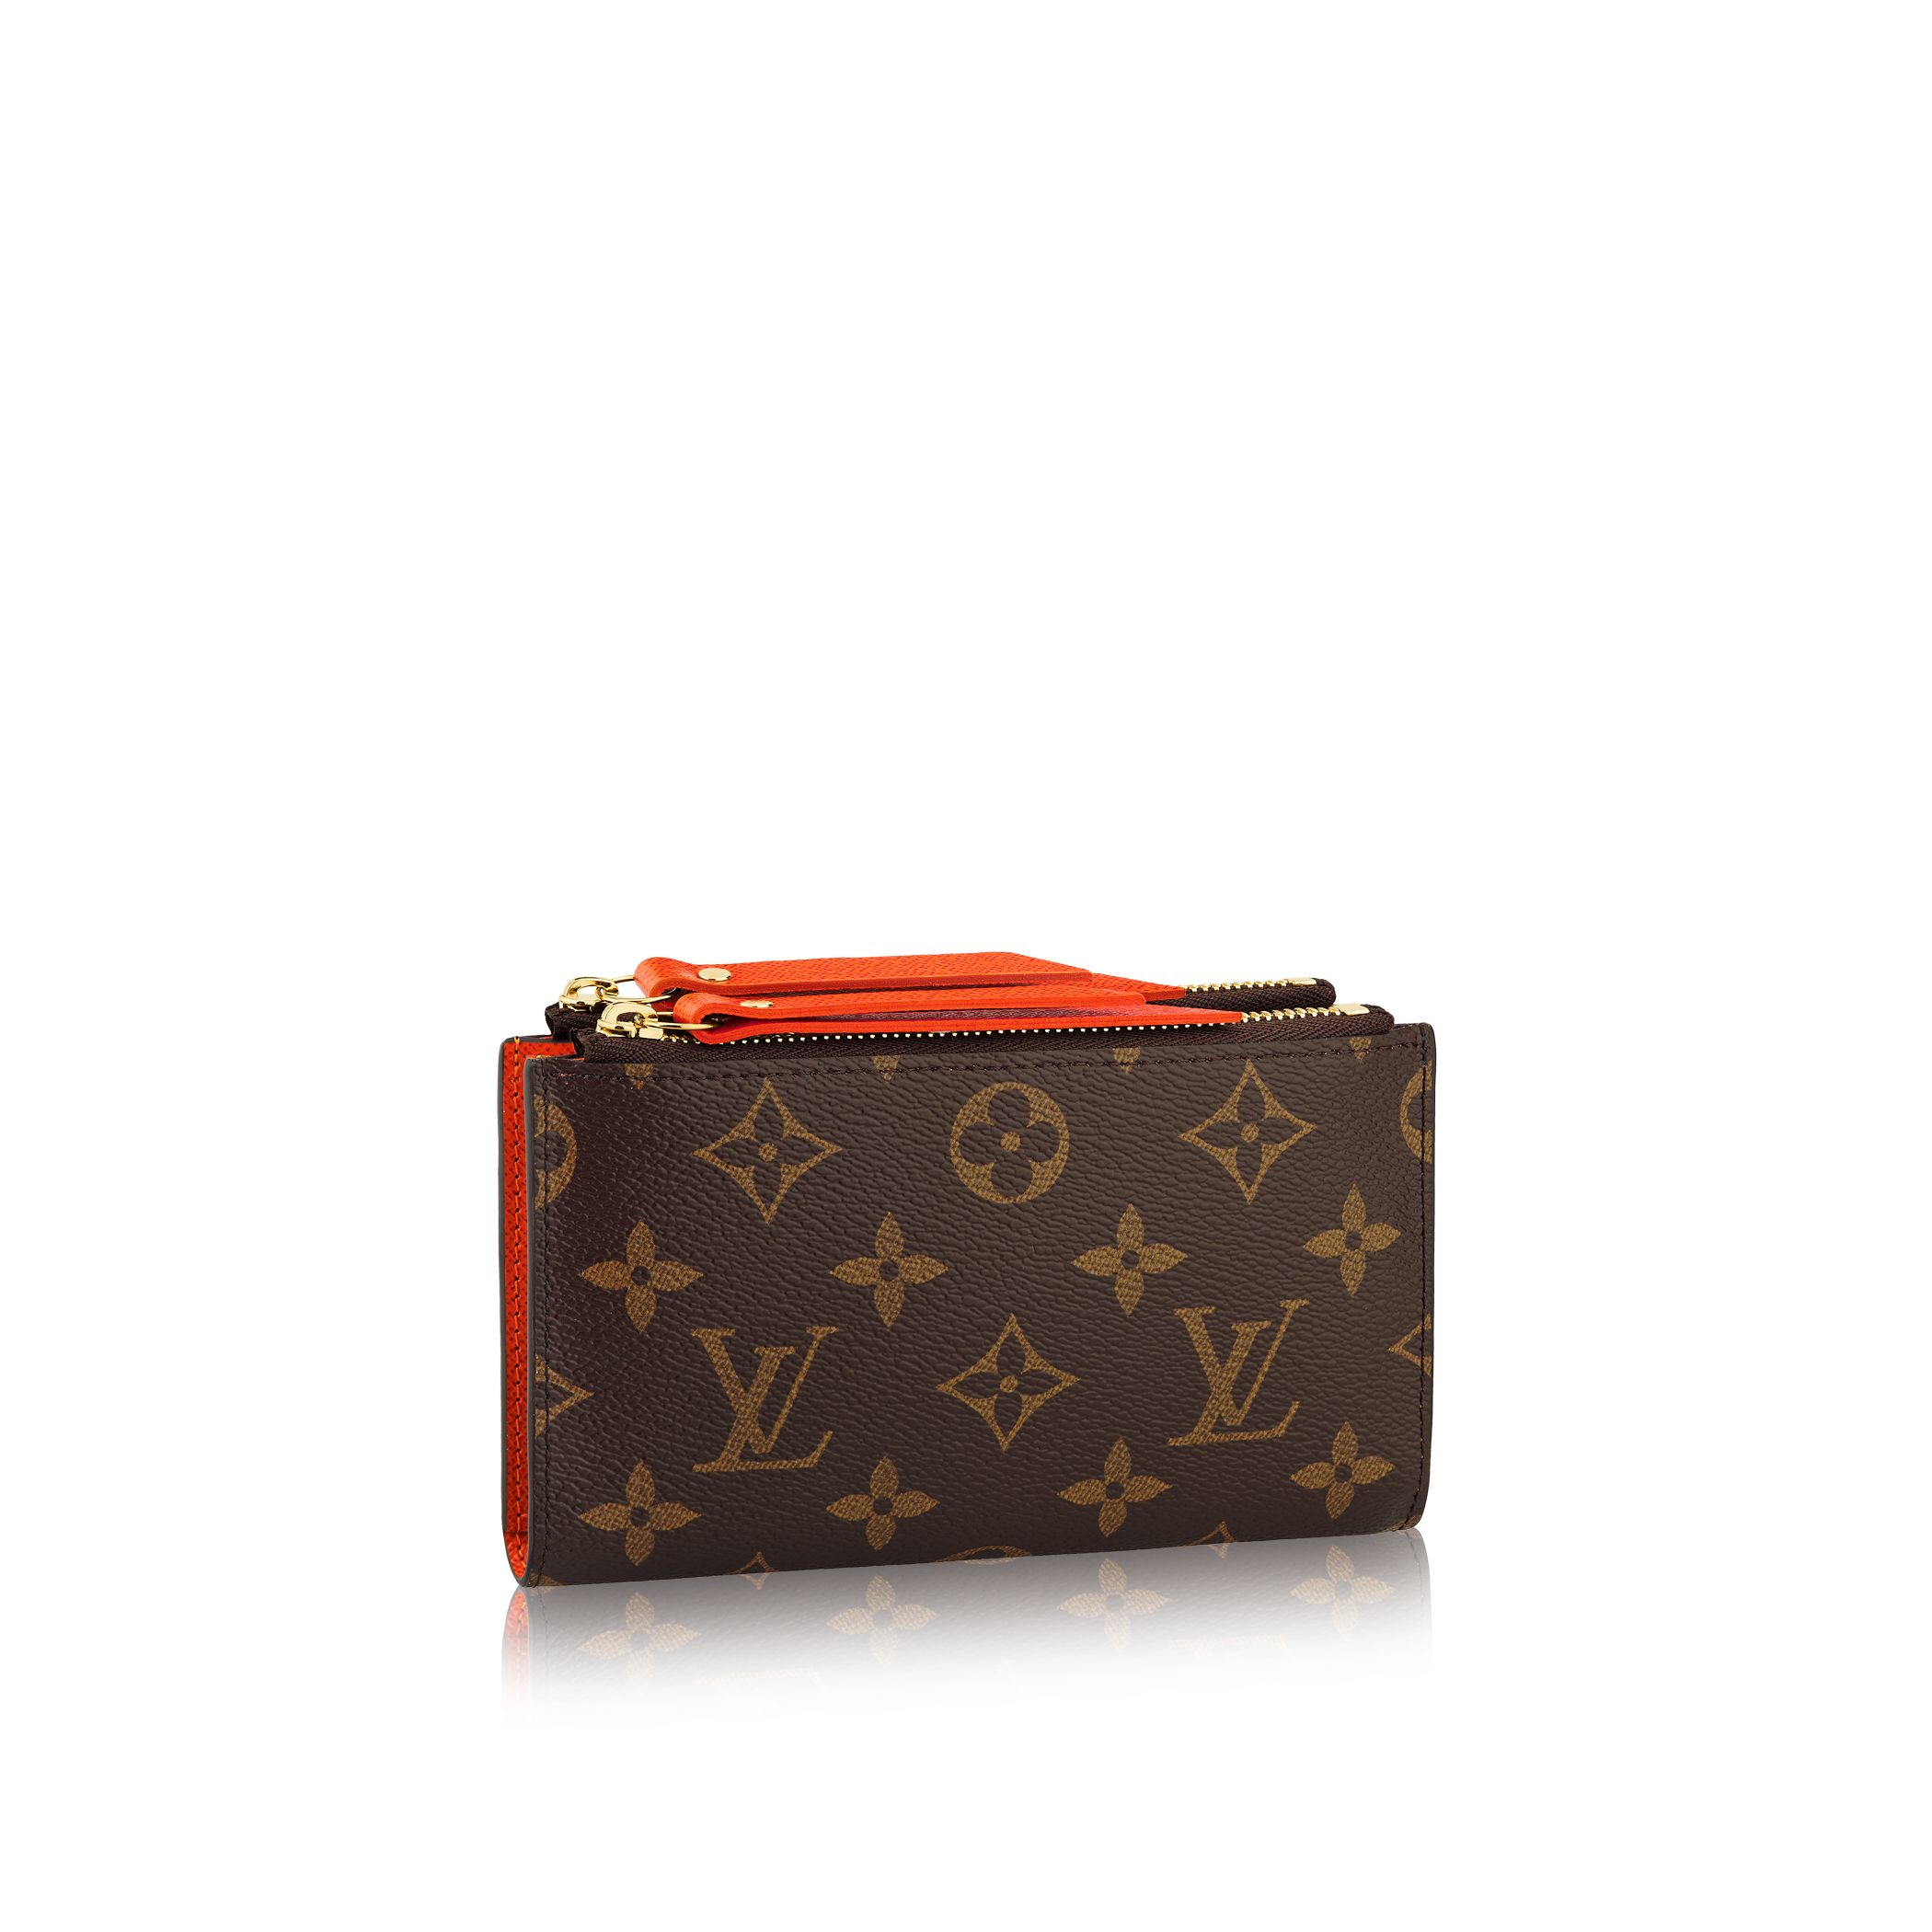 Louis vuitton Adele Compact Wallet in Brown | Lyst